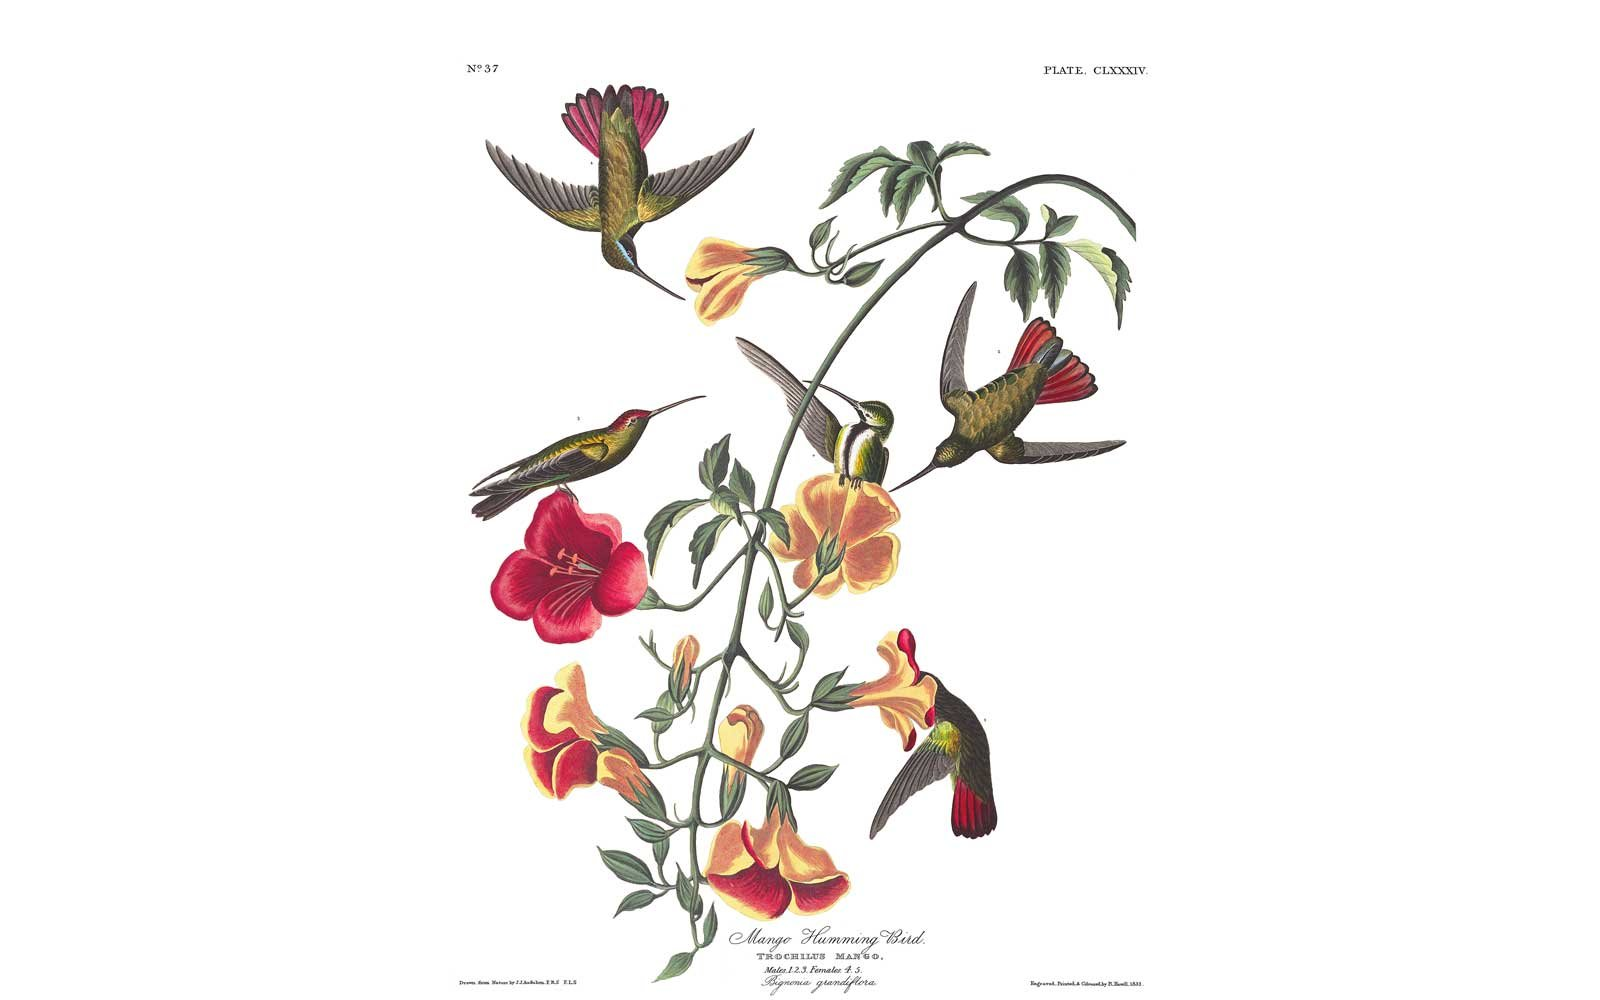 Audubon Birds of America - Mango Hummingbird